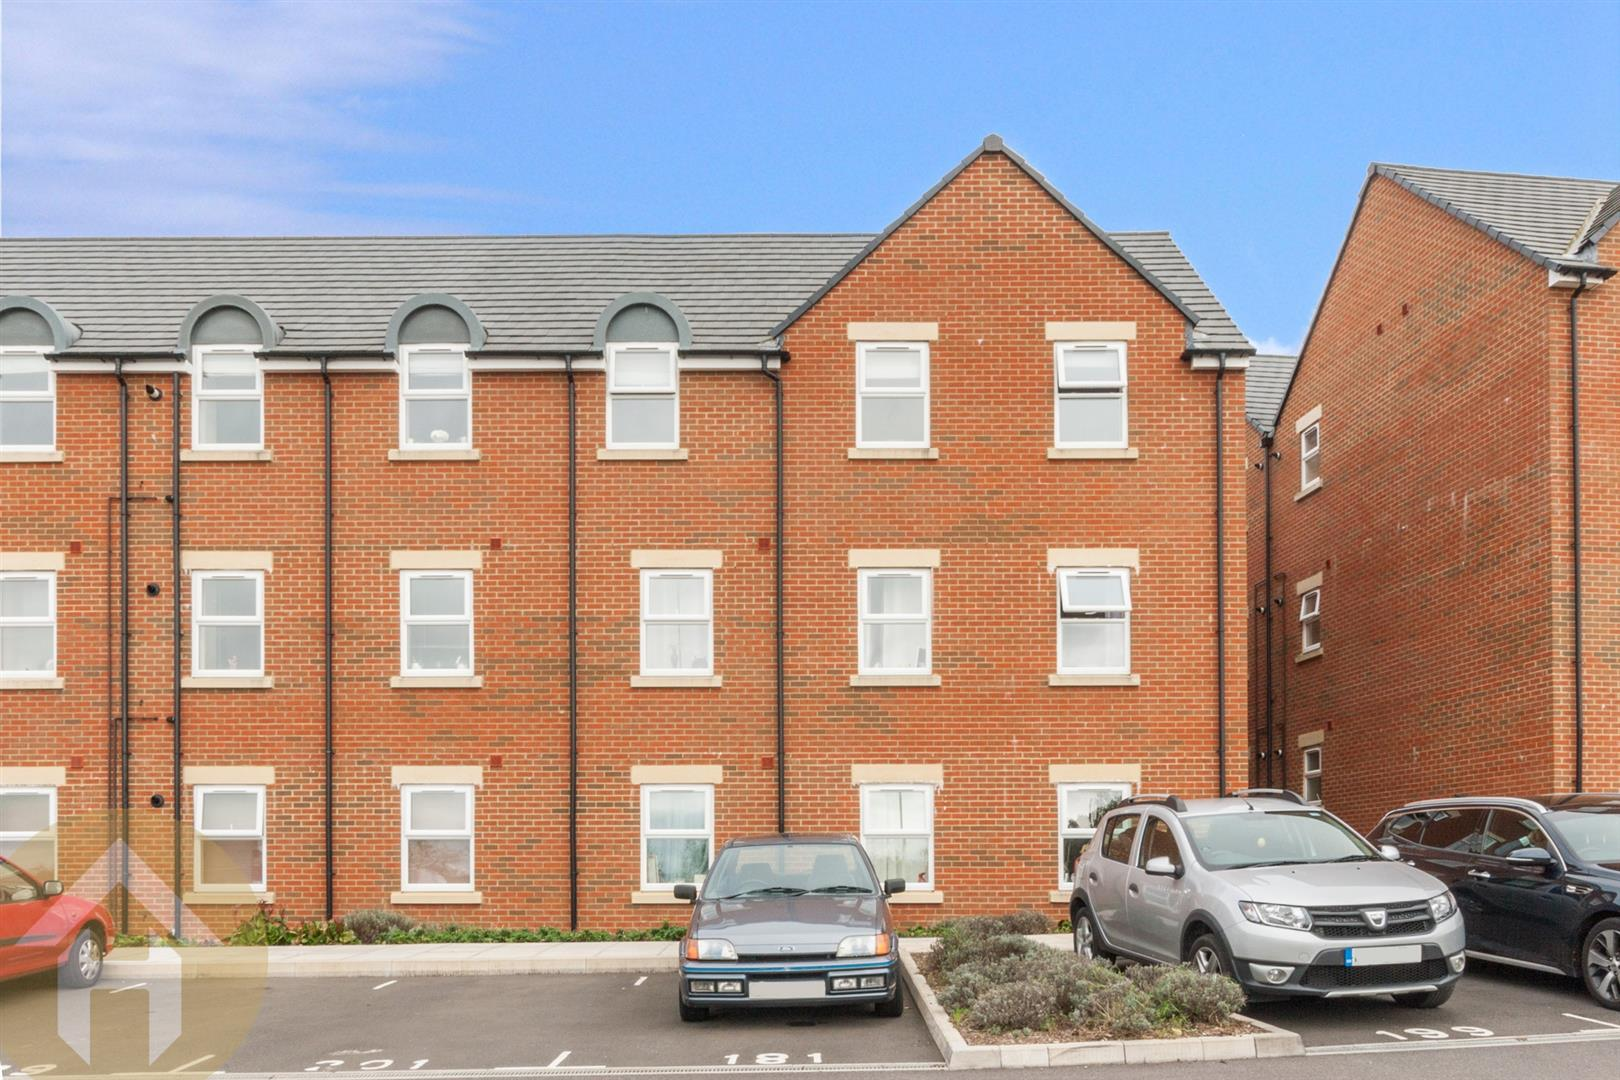 2 Bedrooms Flat for sale in Cloatley Crescent, Royal Wootton Bassett